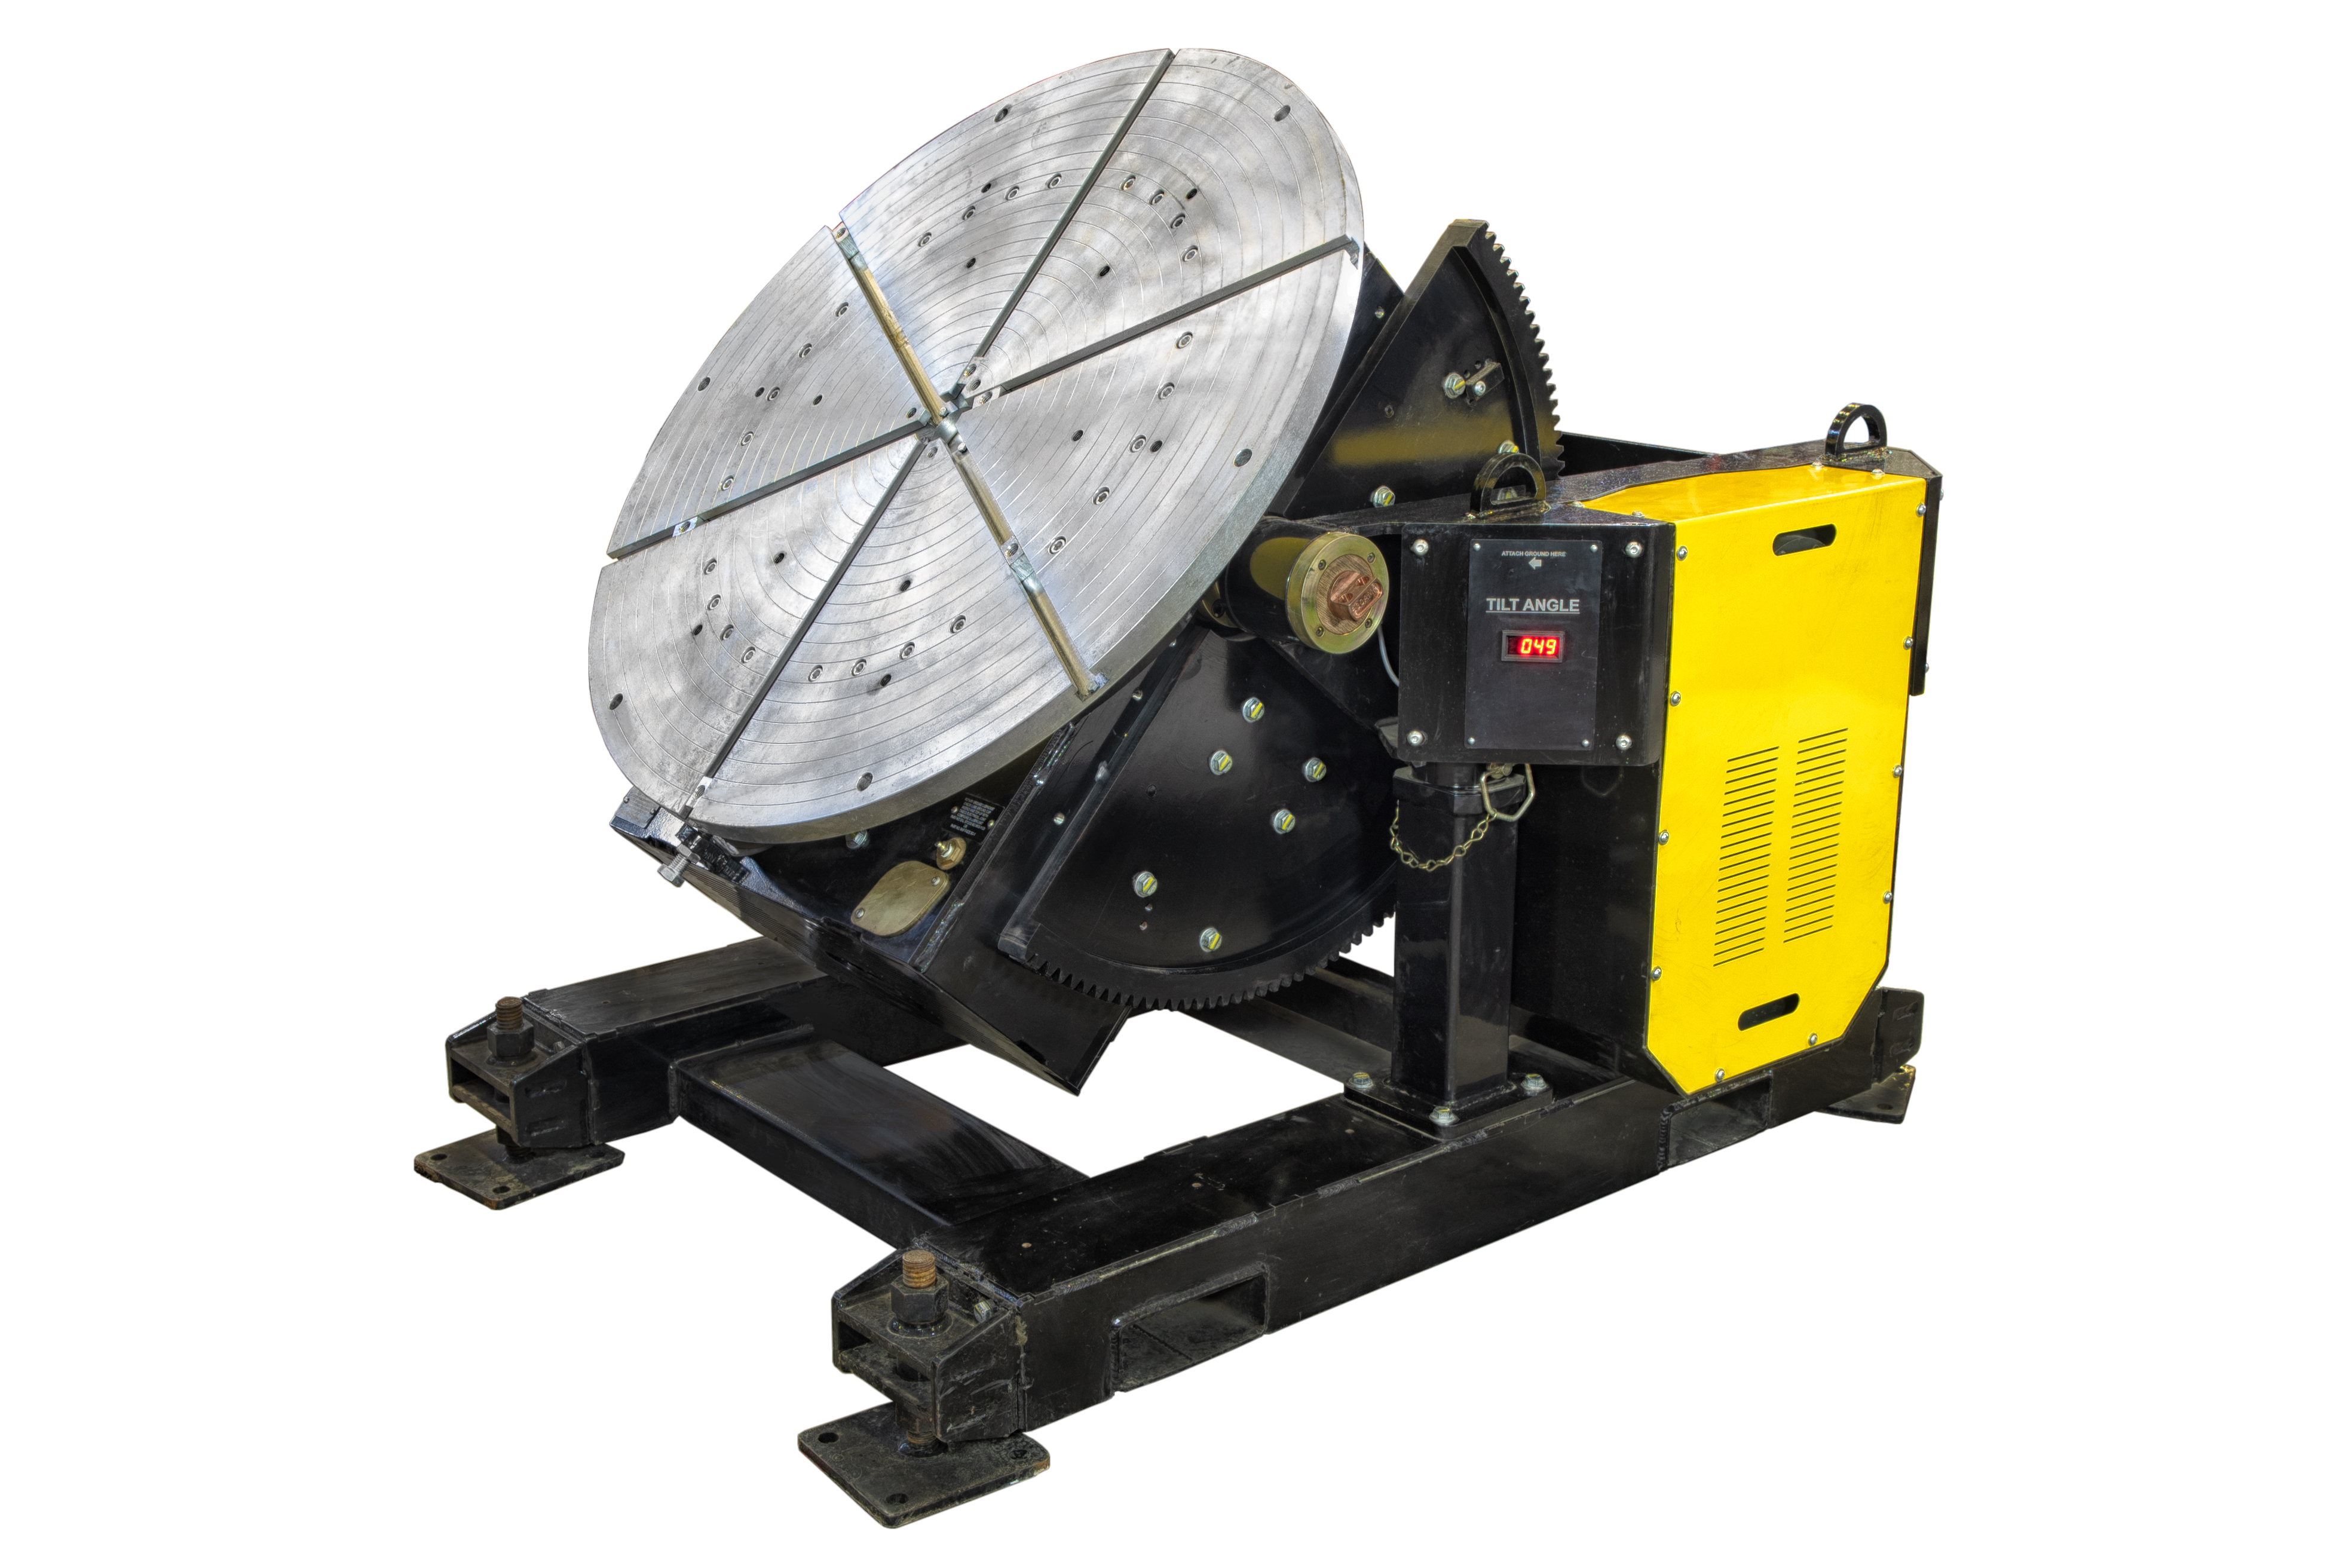 3-ton capacity Gear Tilt Welding Positioner for sale